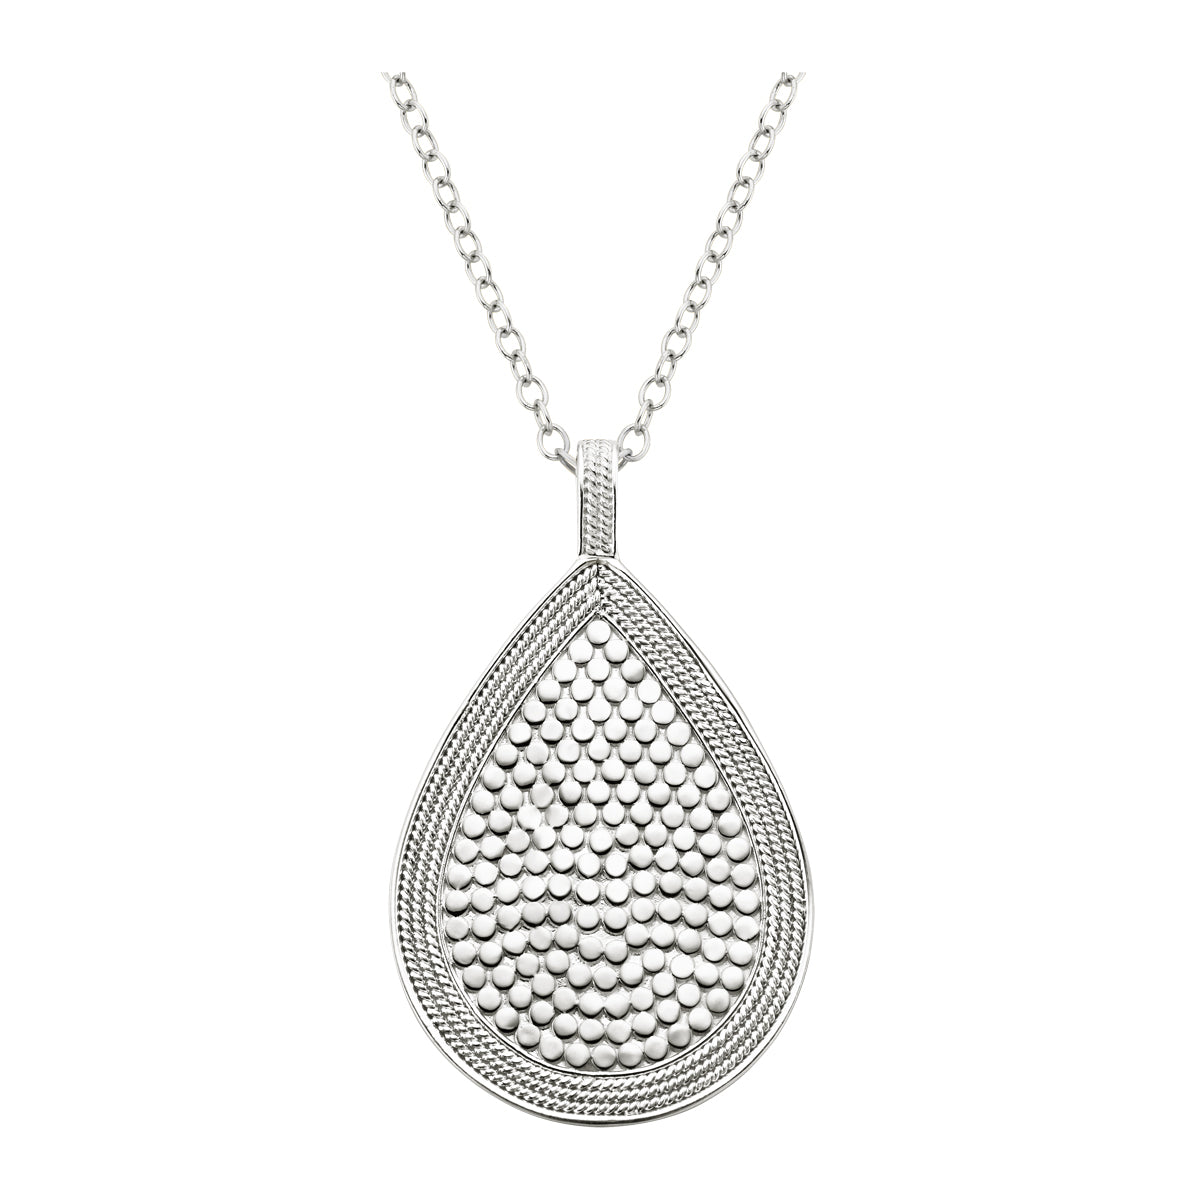 Anna Beck Beaded Teardrop Necklace Gold and Silver